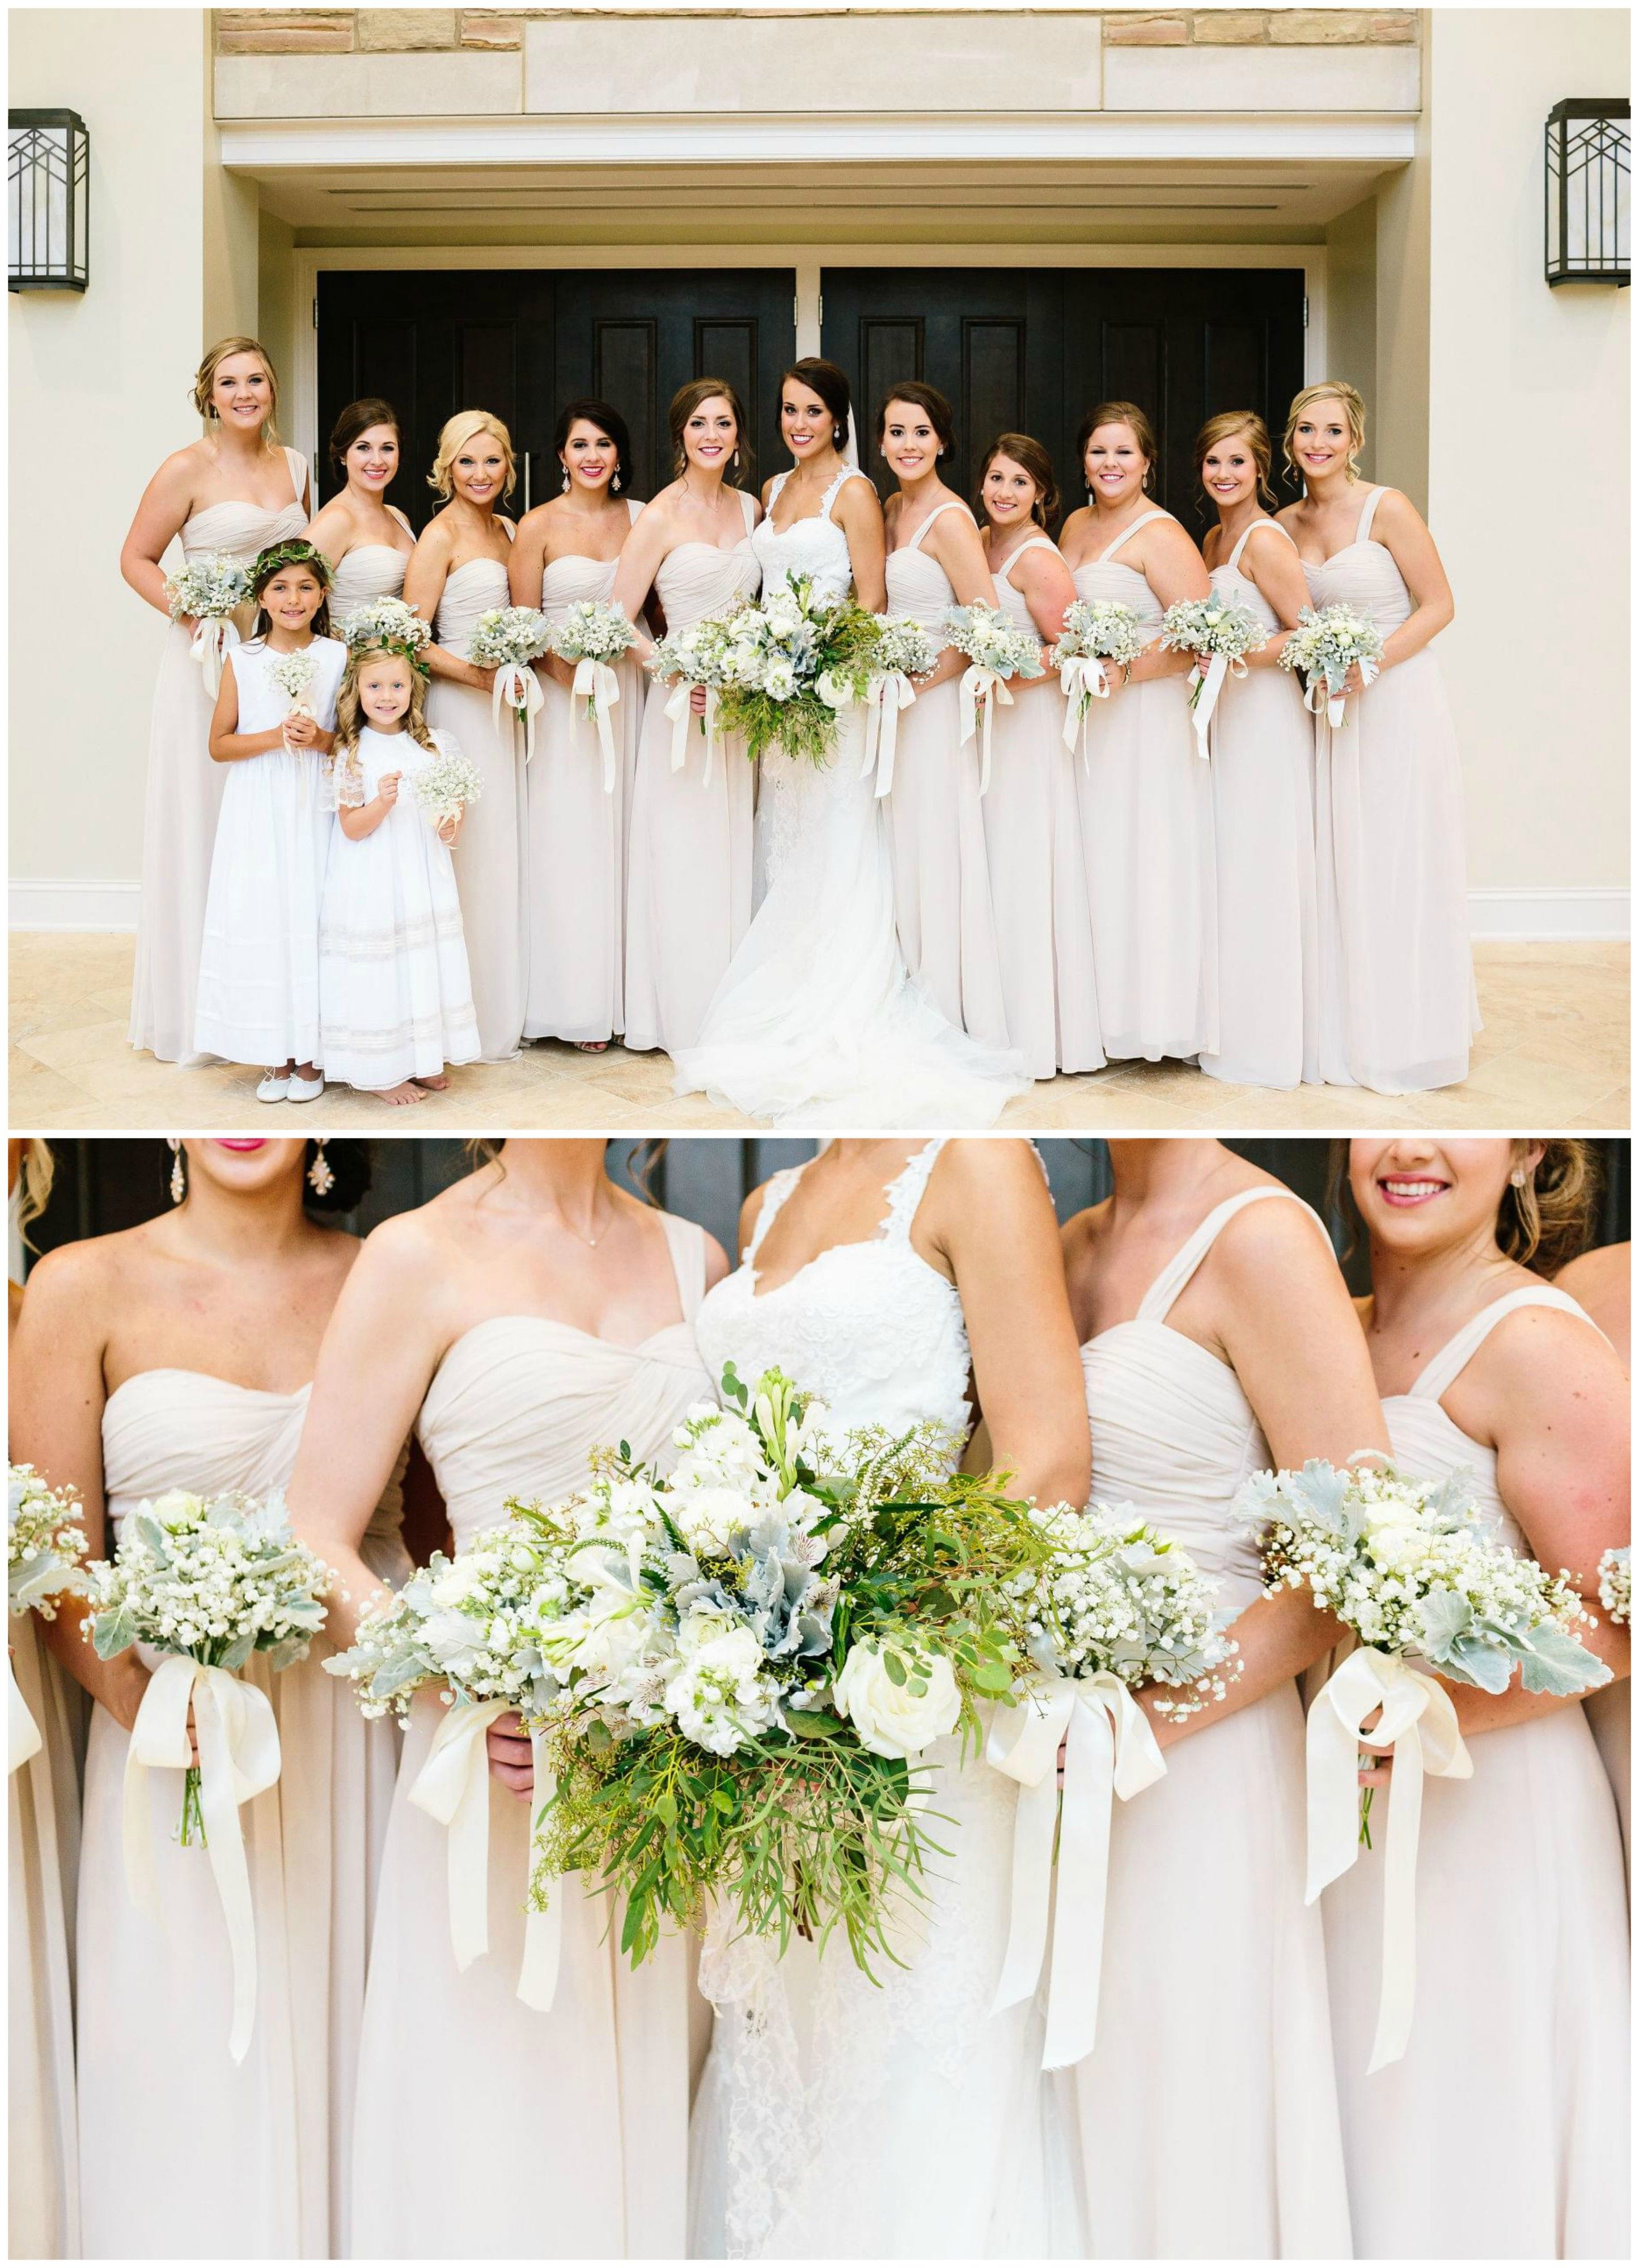 Formal Bridal Party Off White Bridesmaid Dresses White Wedding Bouquets Lon White Bridesmaid Dresses Long White Bridesmaid Dresses Wedding Dress Alterations [ 4000 x 2891 Pixel ]